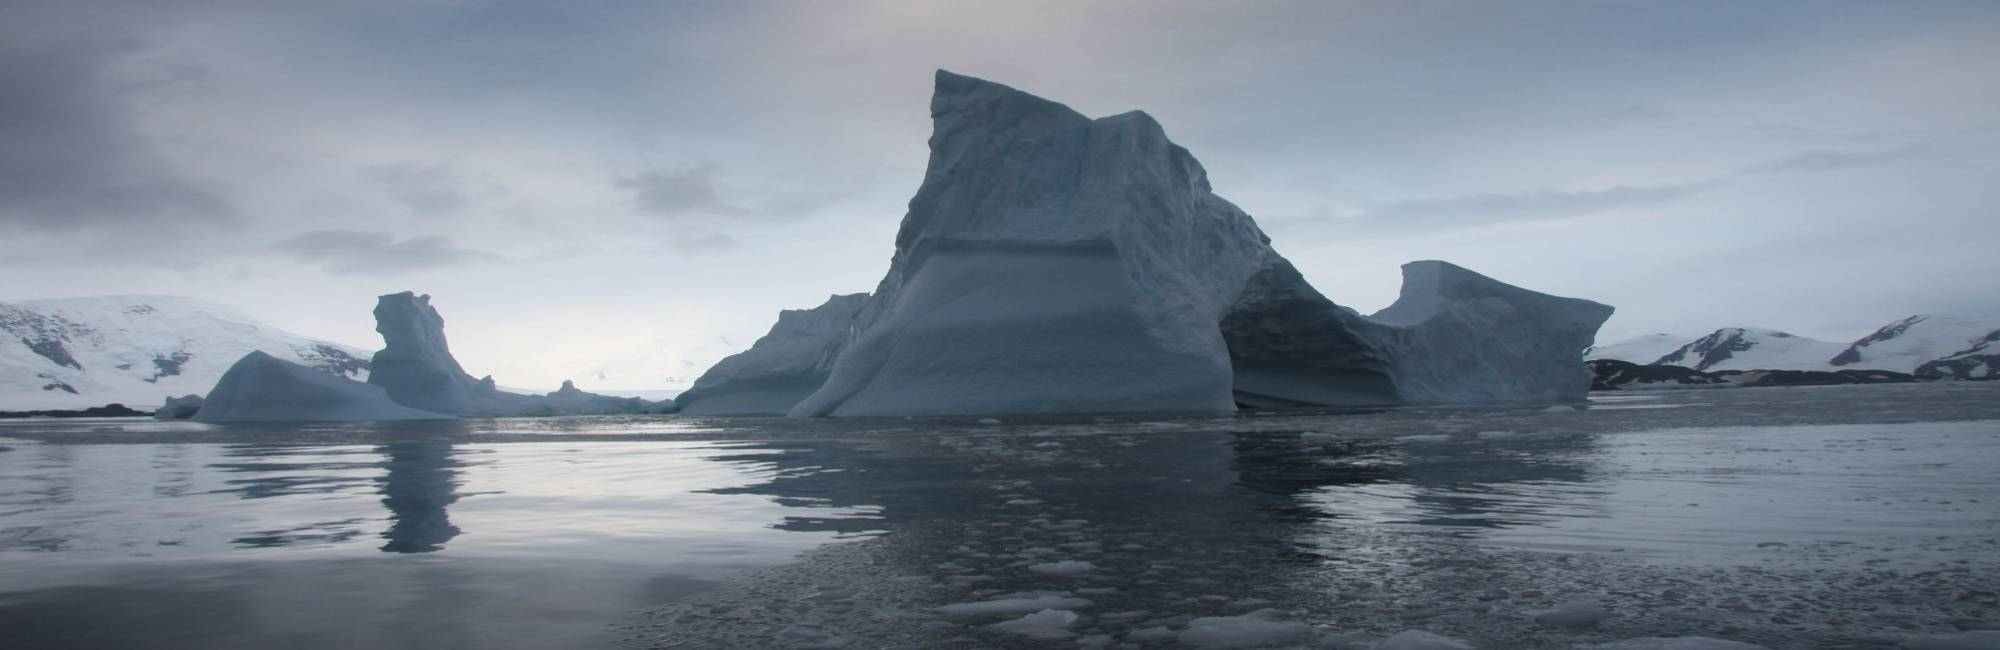 Iceberg in the ocean